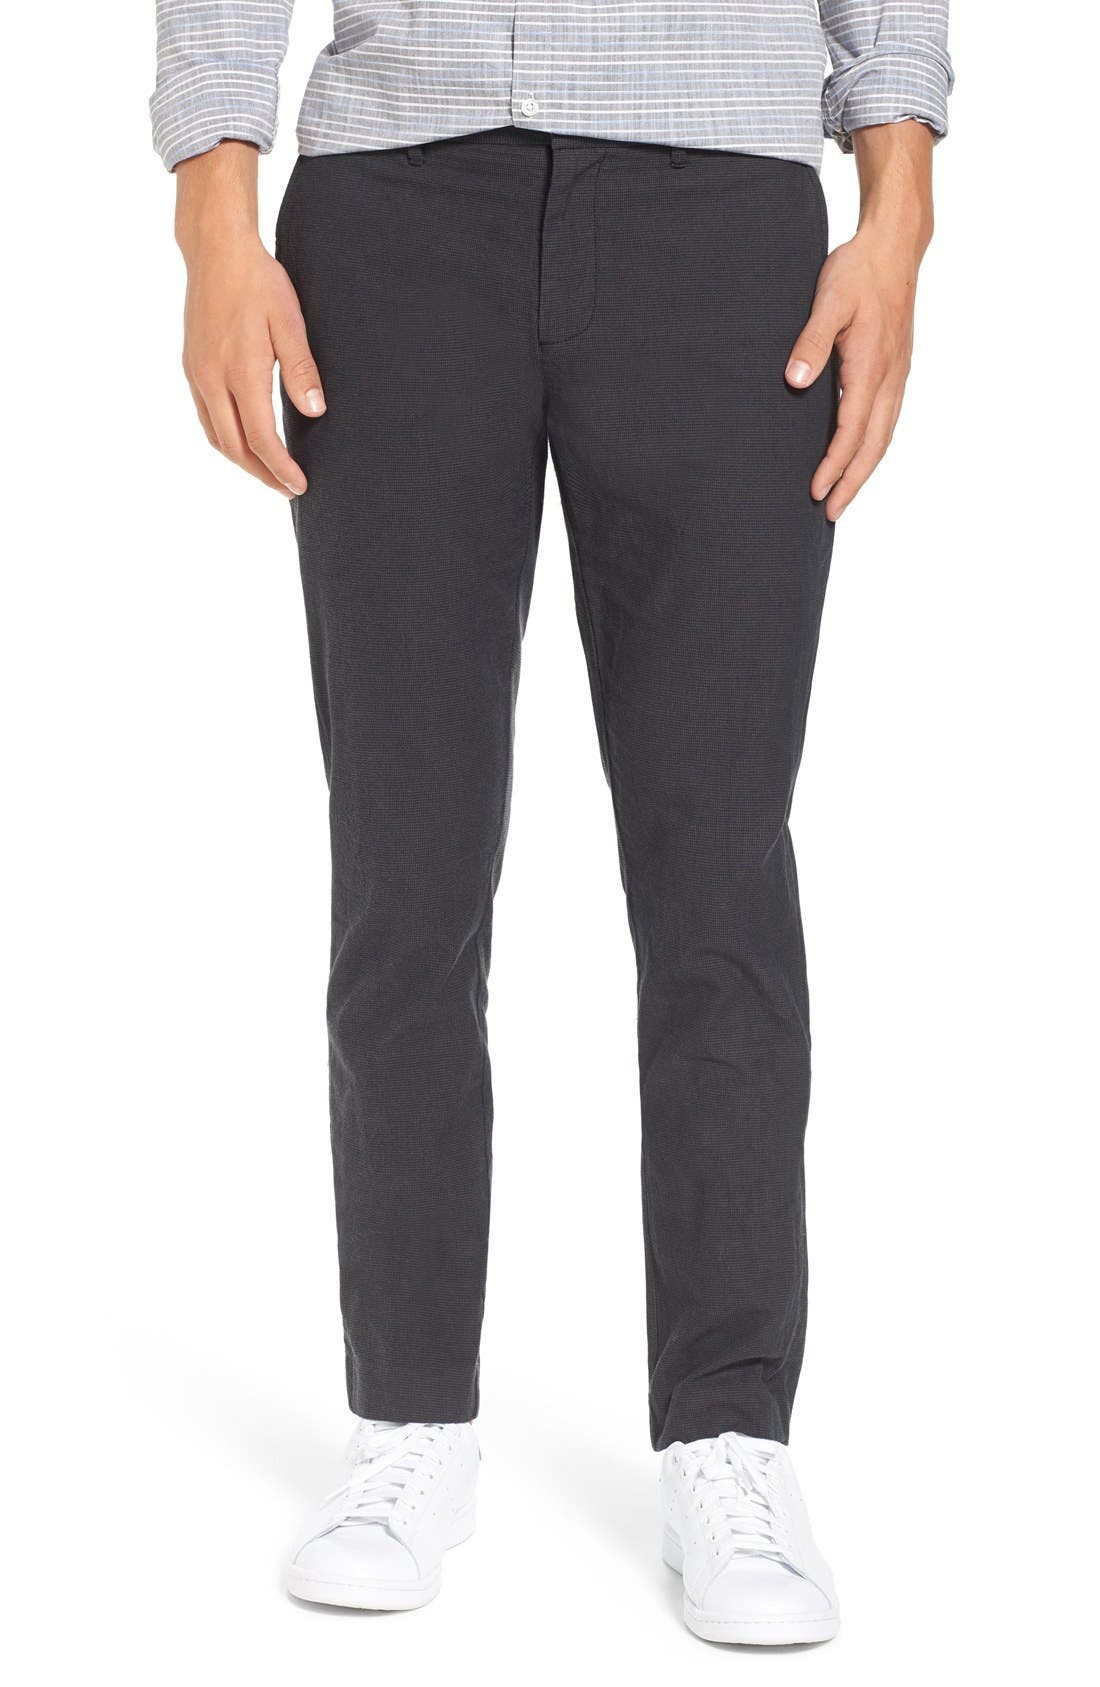 ORIGINAL PENGUIN Dobby Slim Fit Chinos